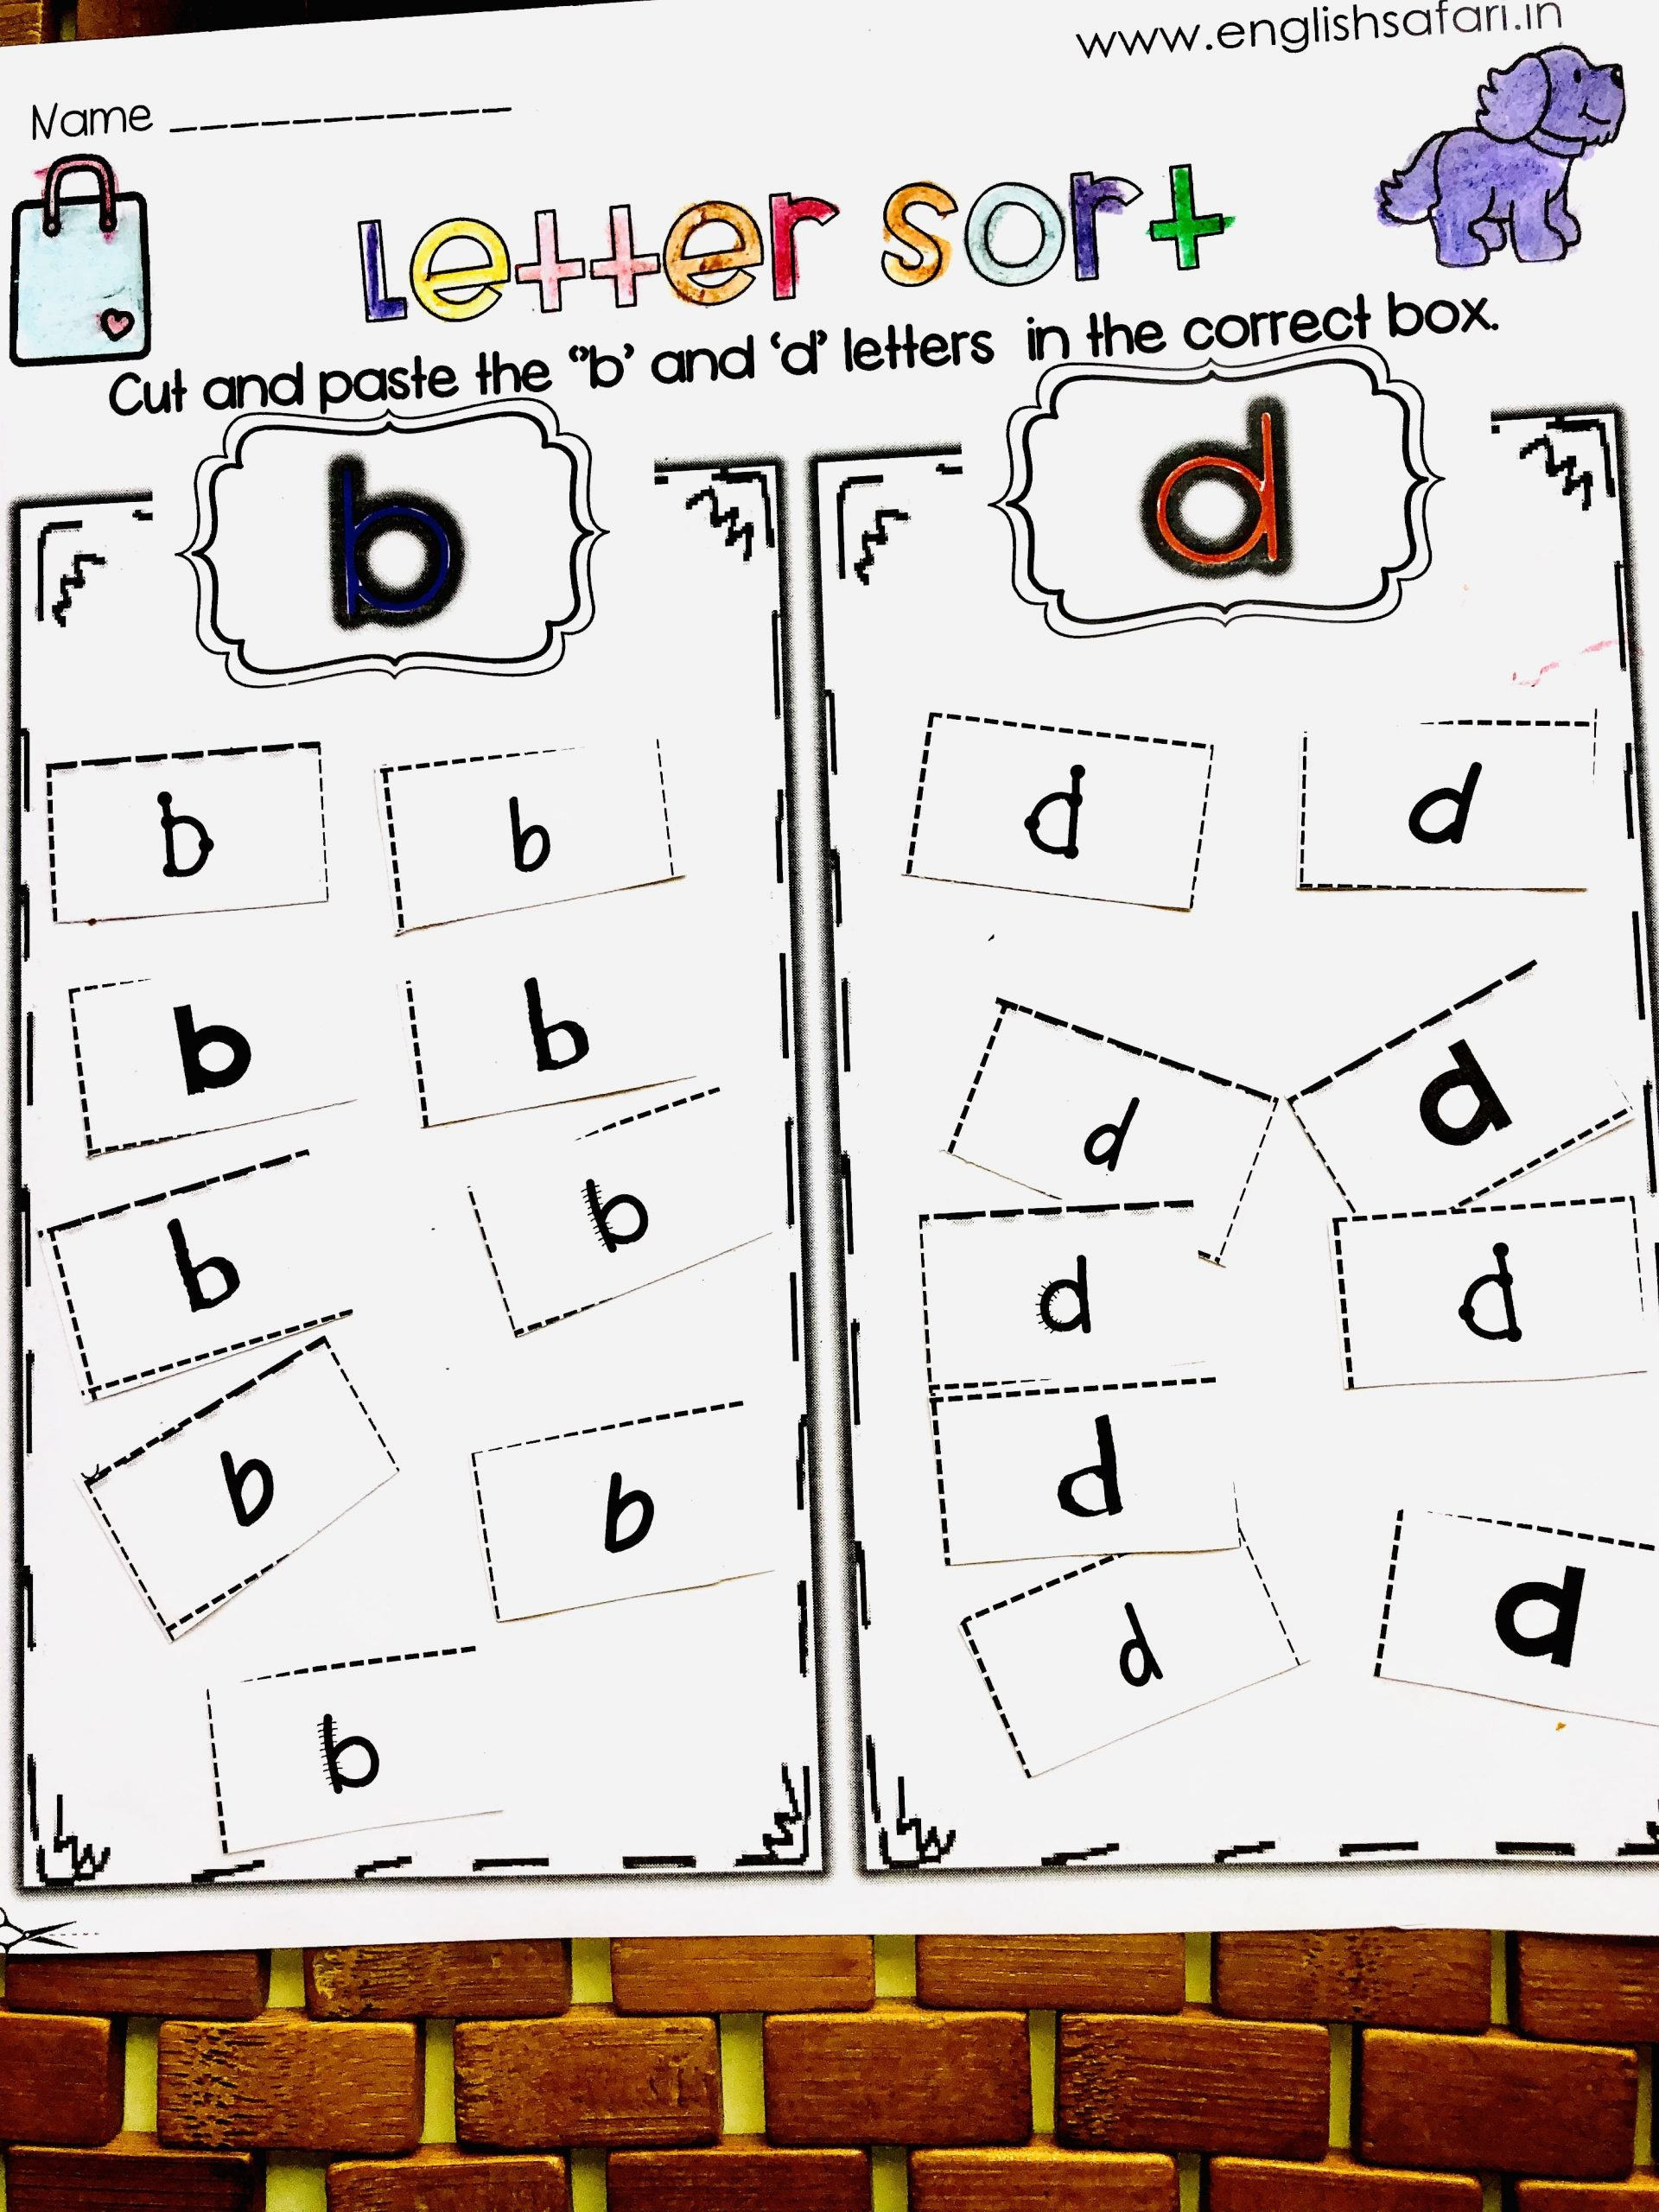 b and d confusion worksheets FREE